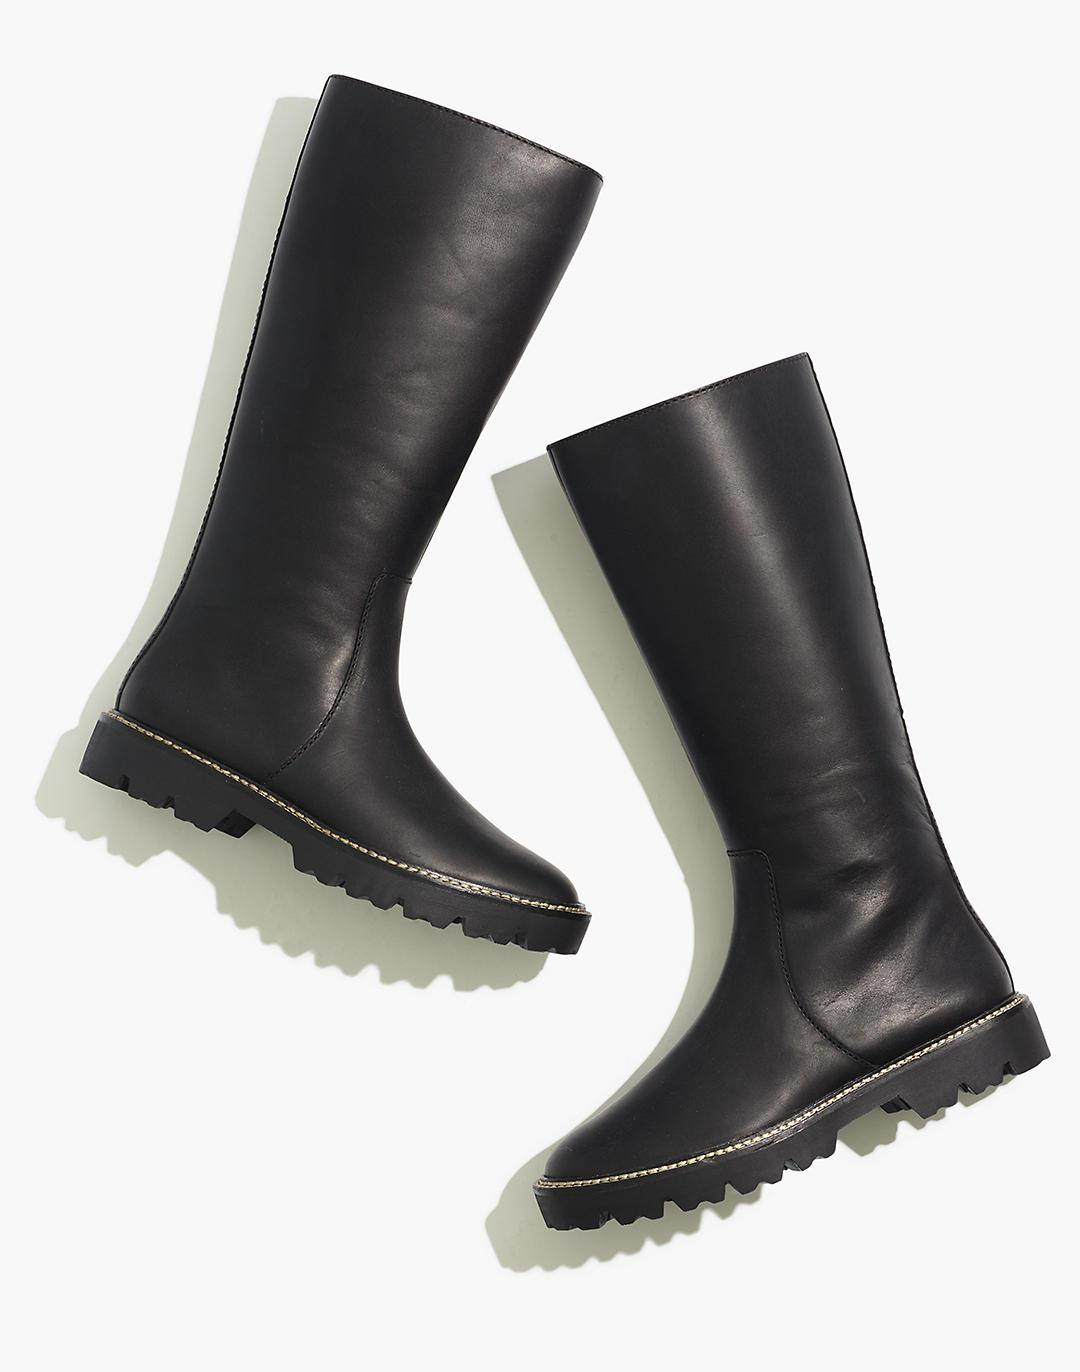 The Citywalk Lugsole Tall Boot in Leather